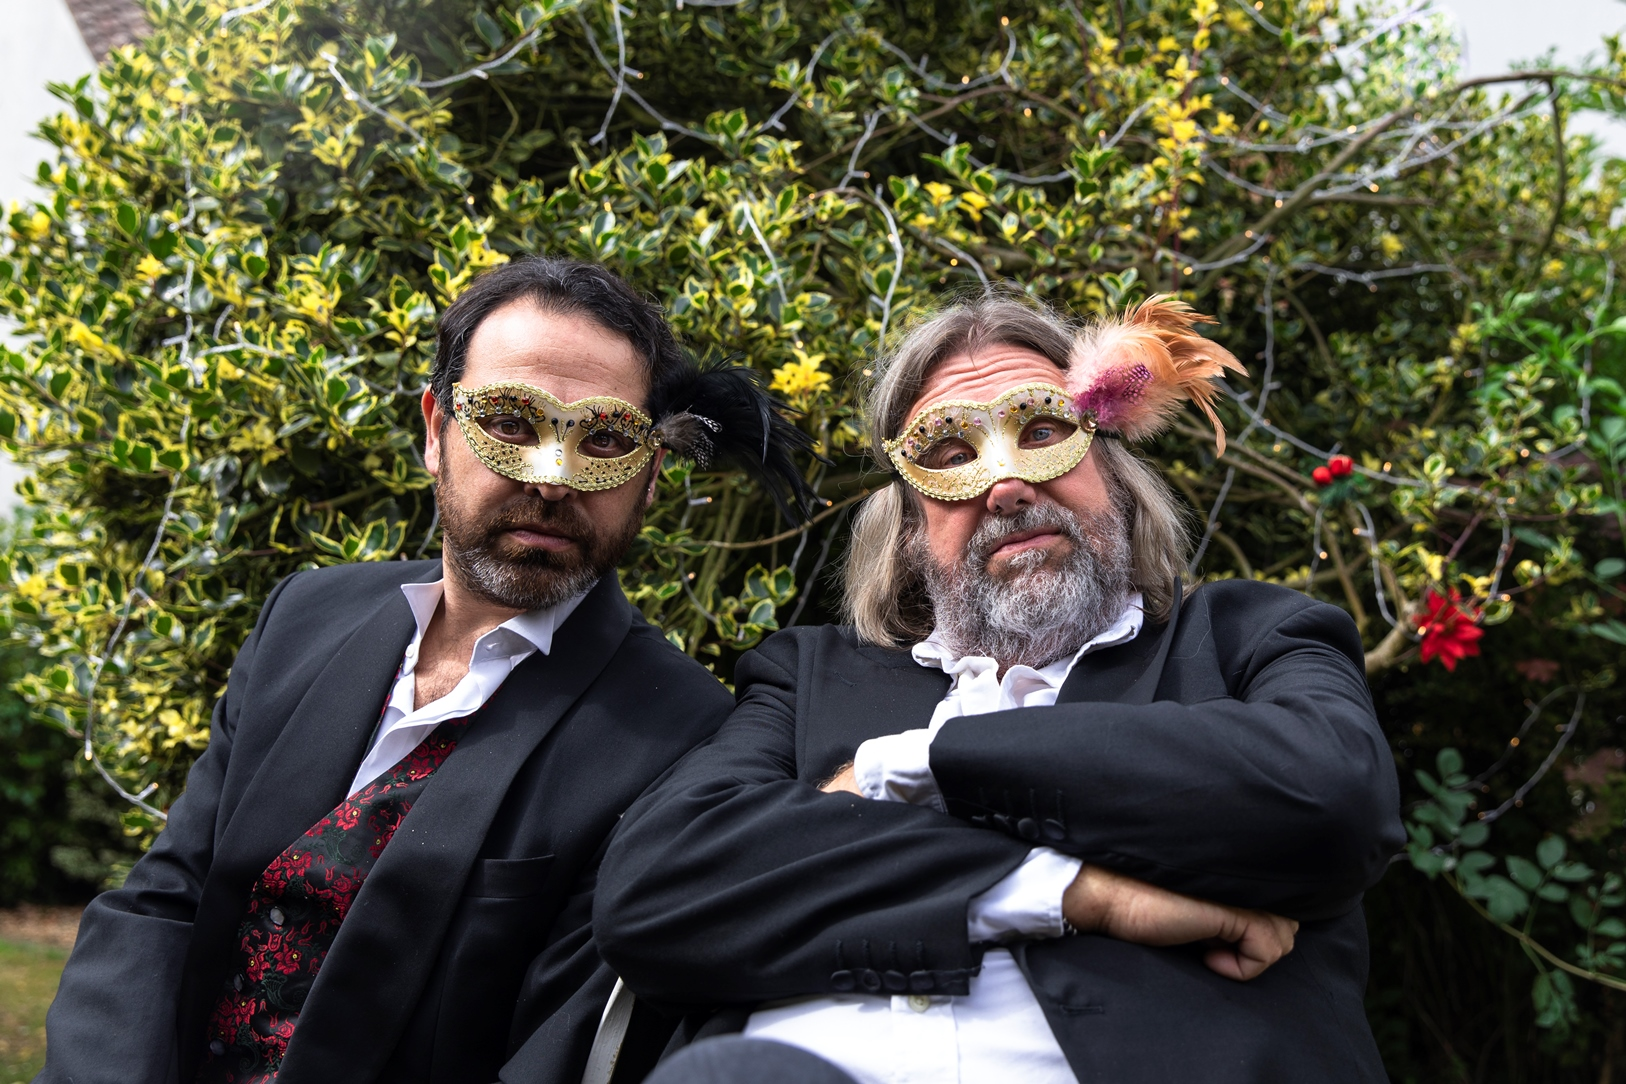 Belshazzar's Feast 'Two Wise Men' Tour at Halsway Manor